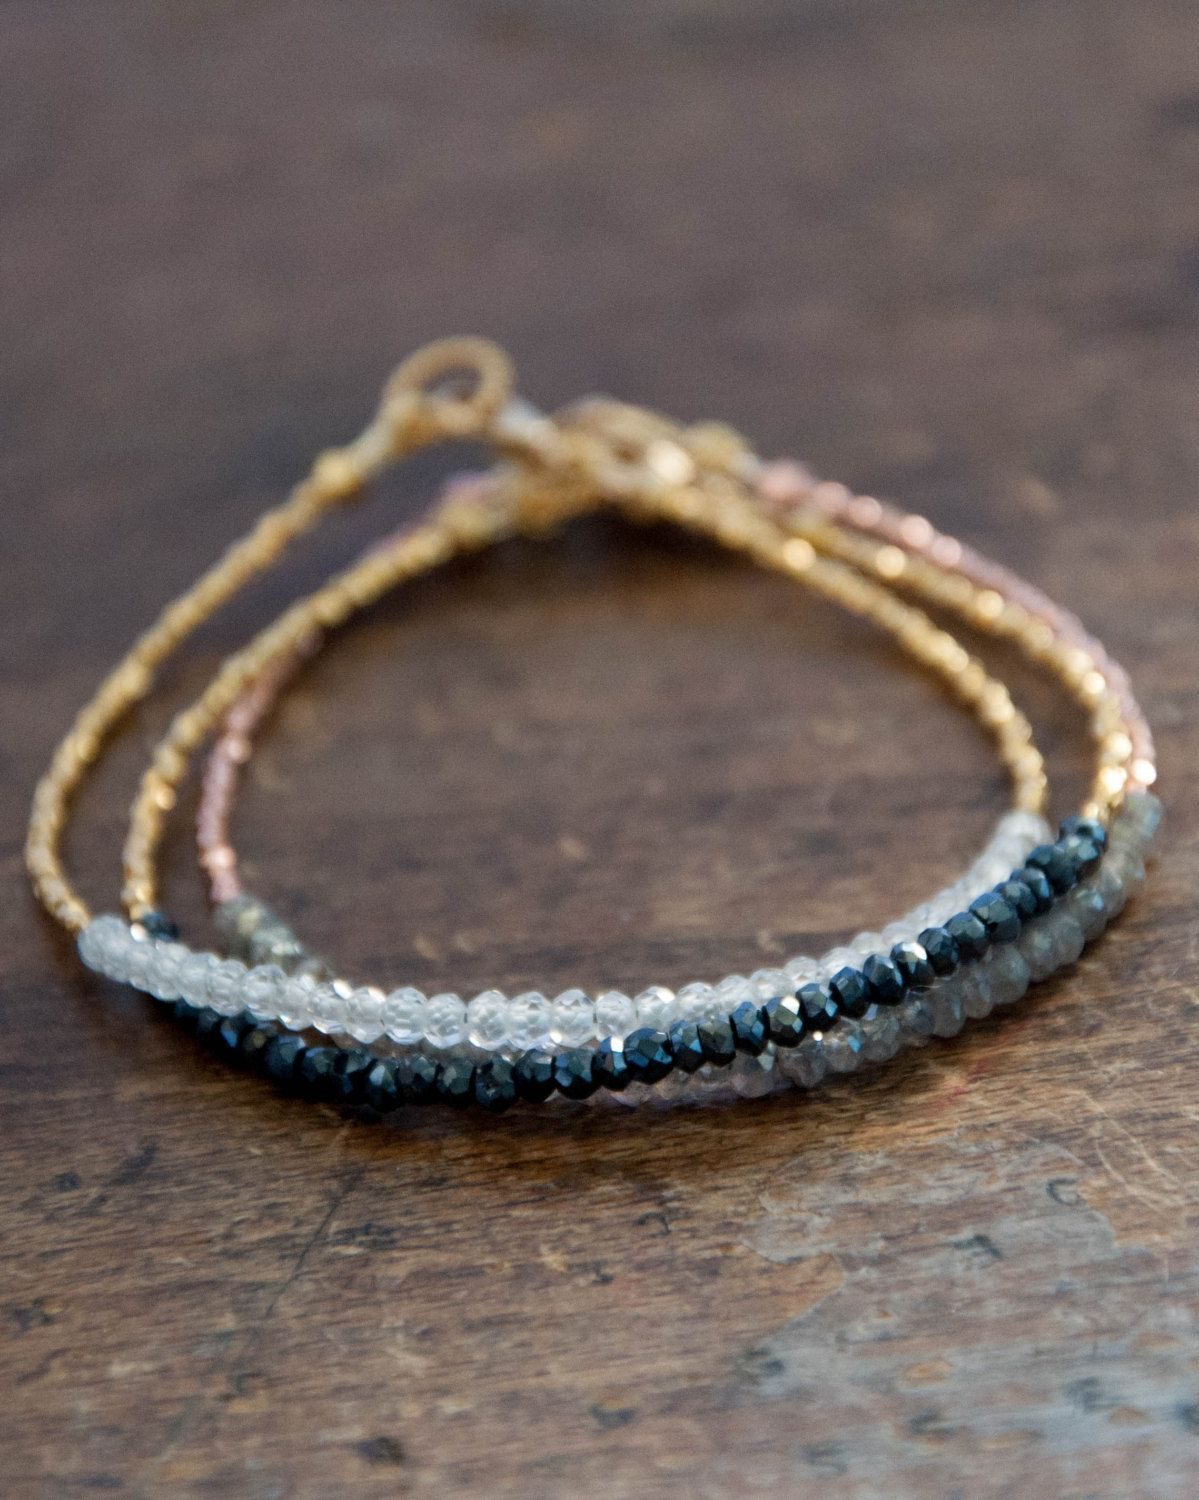 Handmade minimalist gold vermeil black spinel beaded tennis bracelet